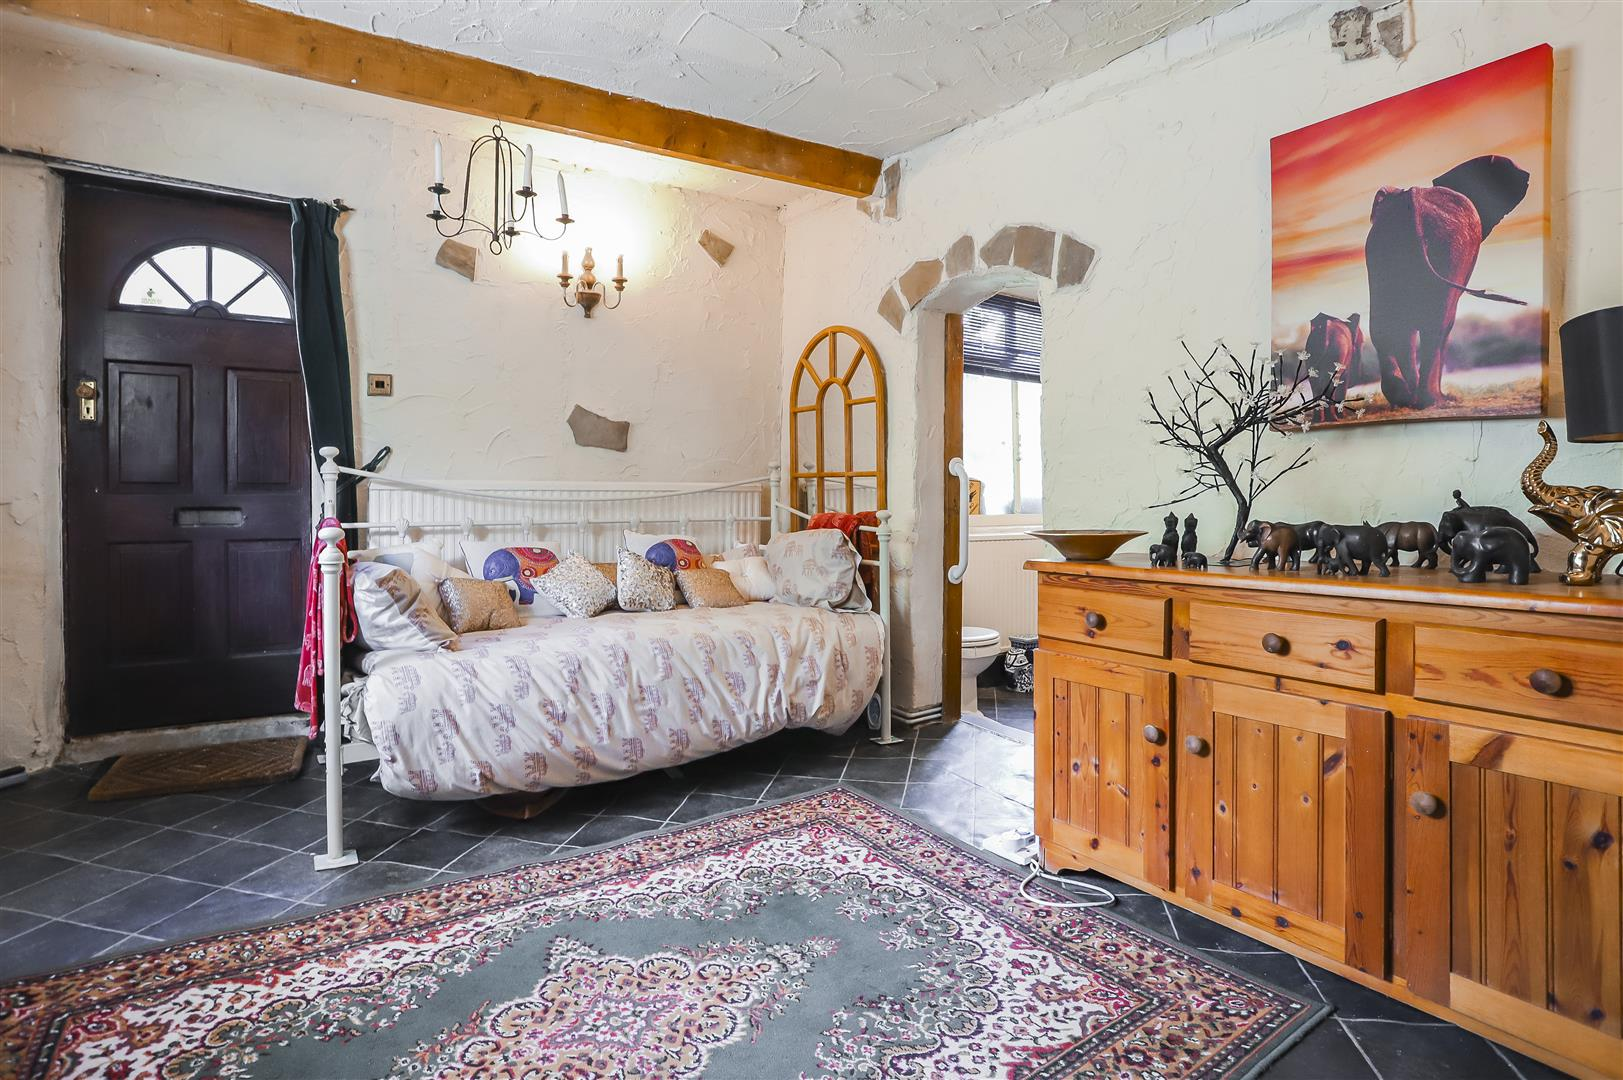 3 Bedroom House For Sale - Image 77